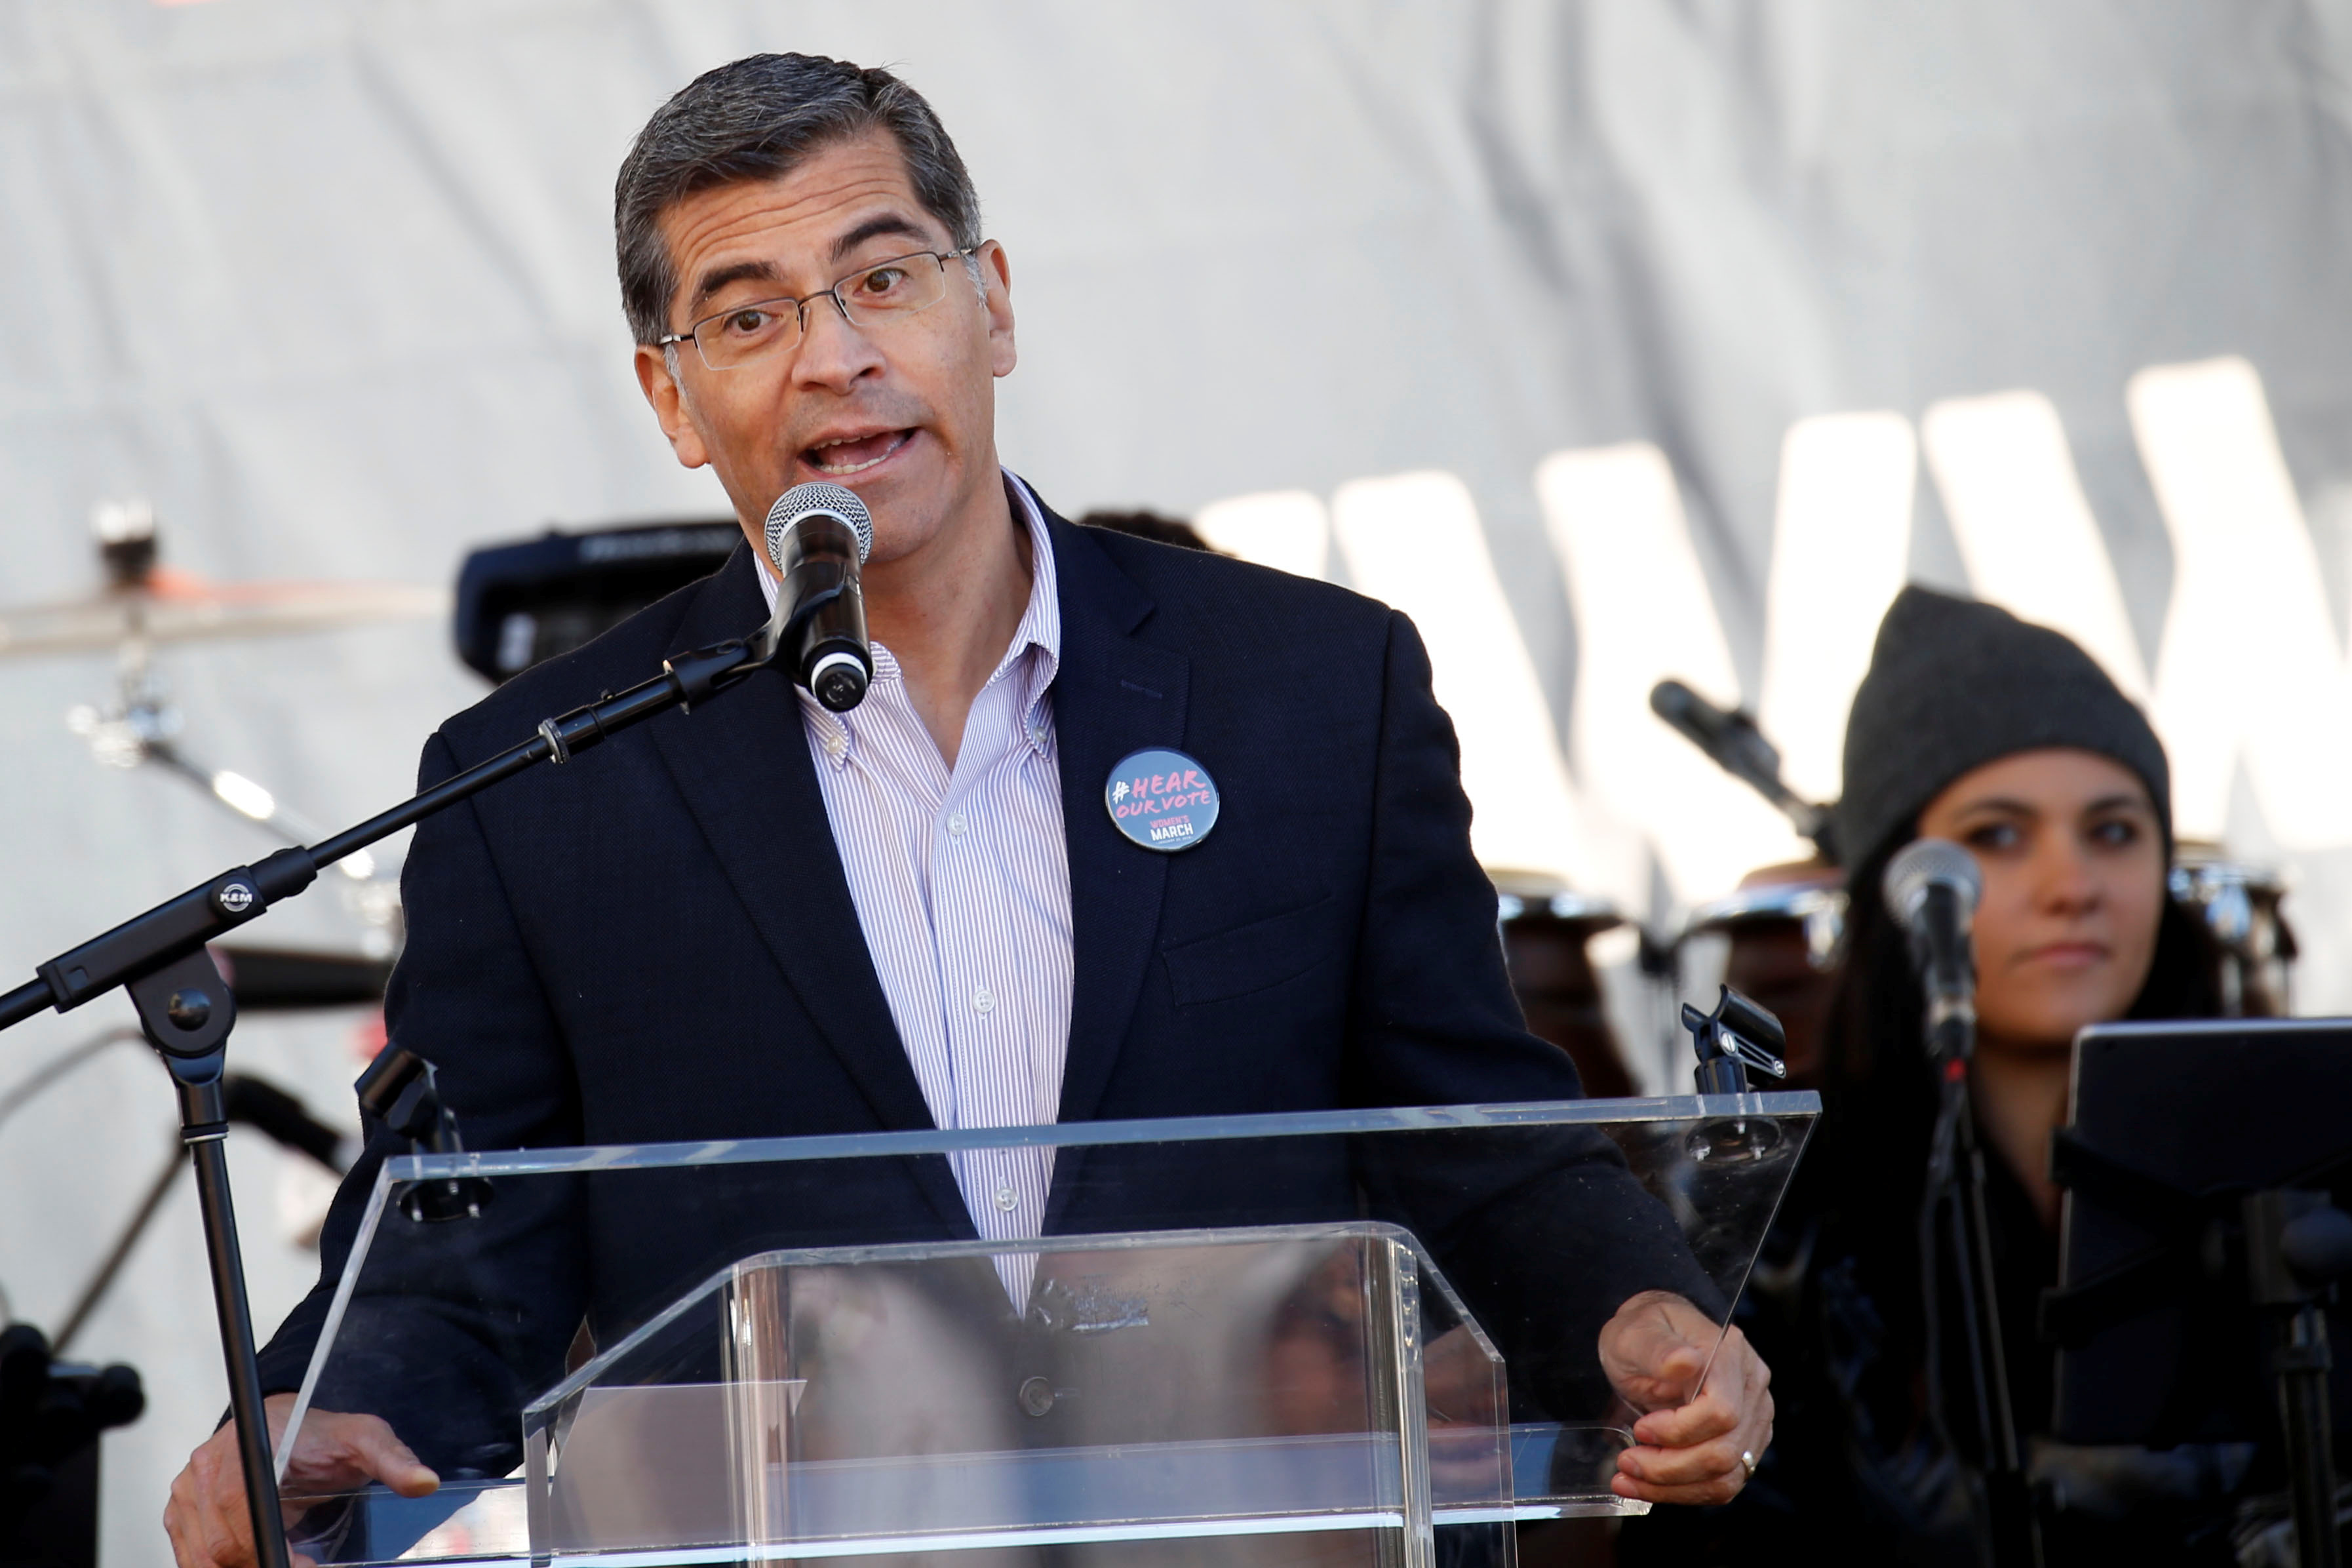 California Attorney General Xavier Becerra speaks at the second annual Women's March in Los Angeles, California